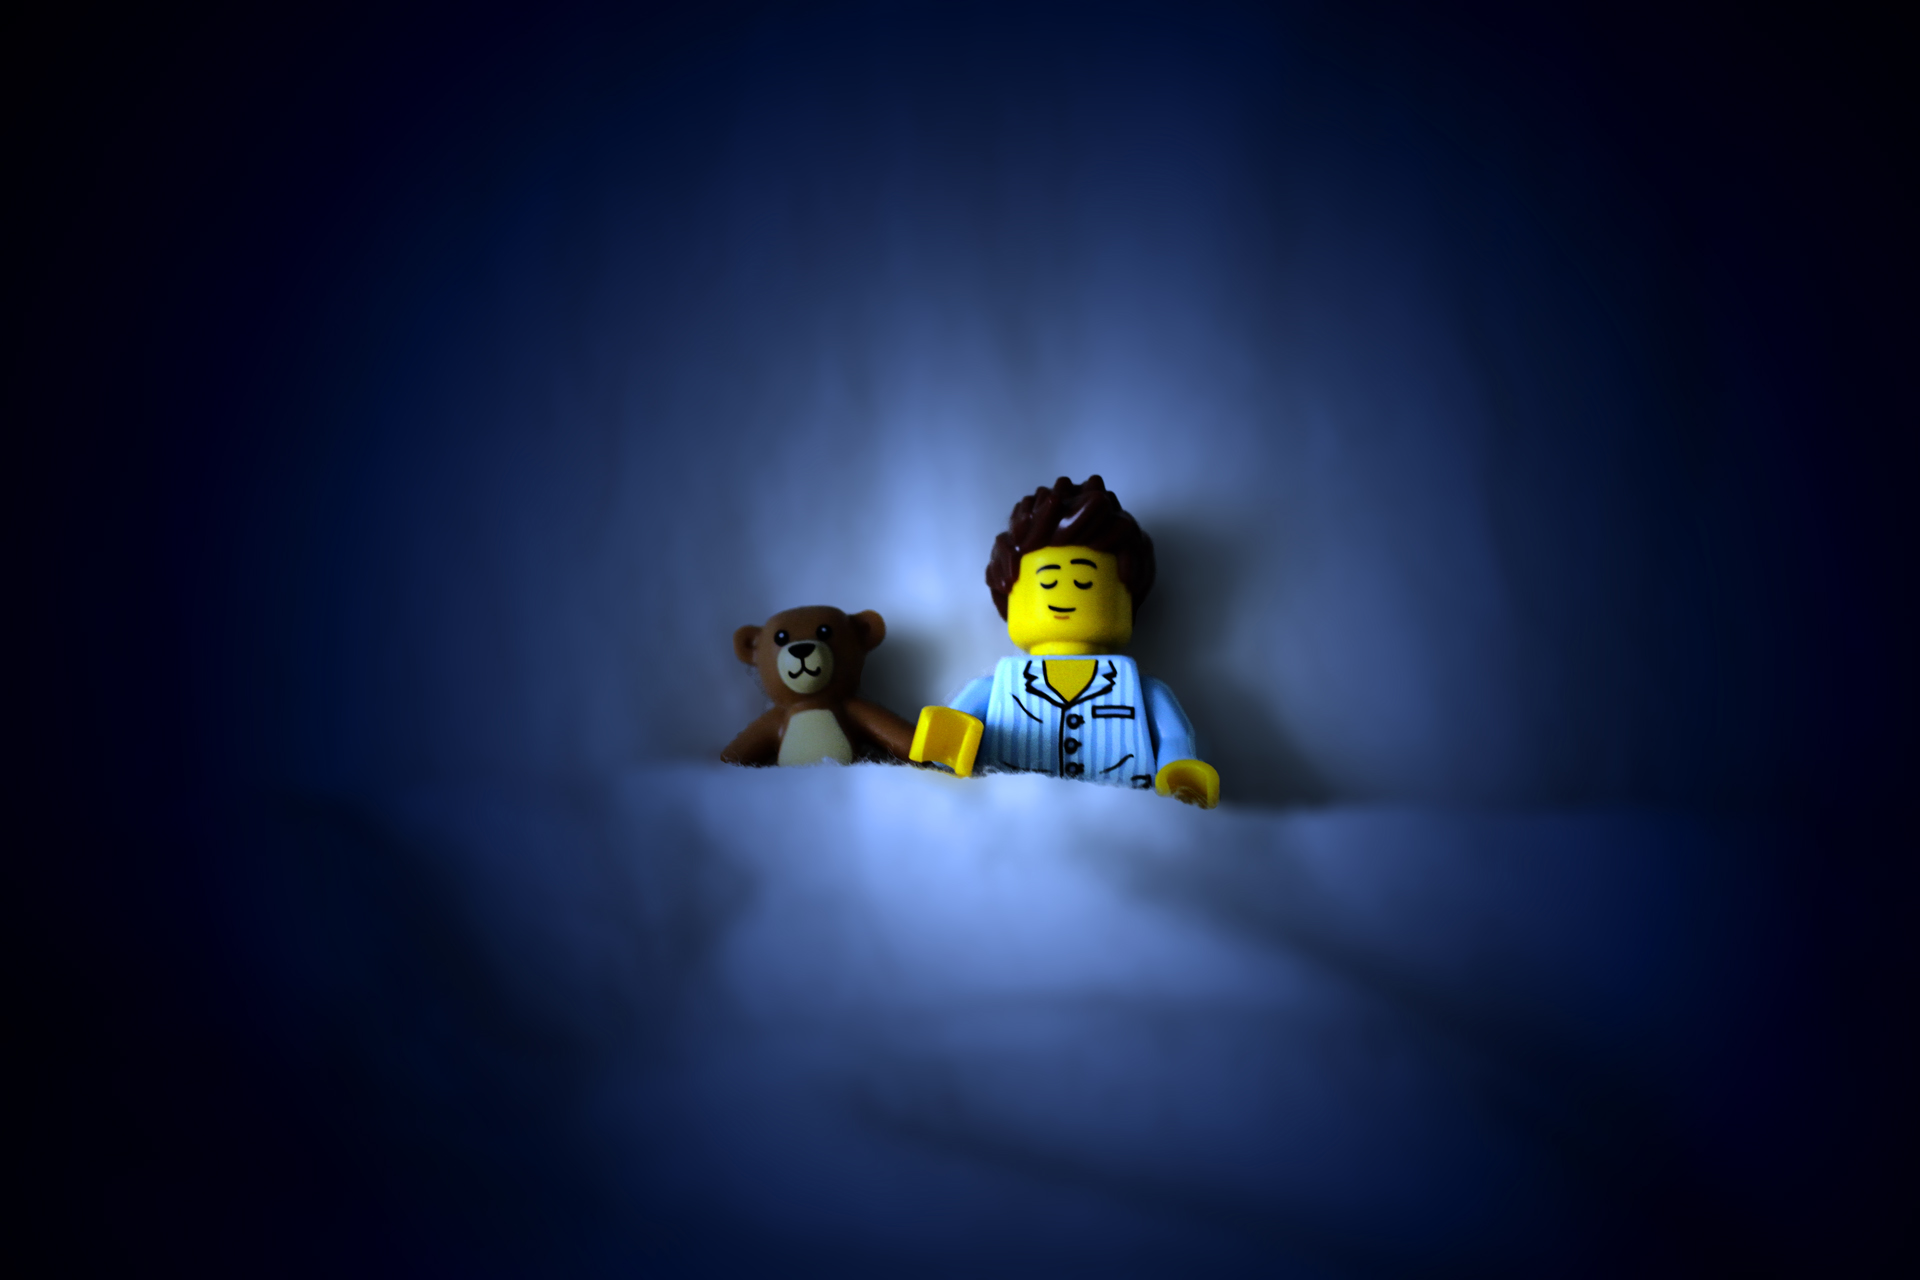 Lego wallpaper 6542 1920x1280 px hdwallsource lego wallpaper 6542 voltagebd Image collections